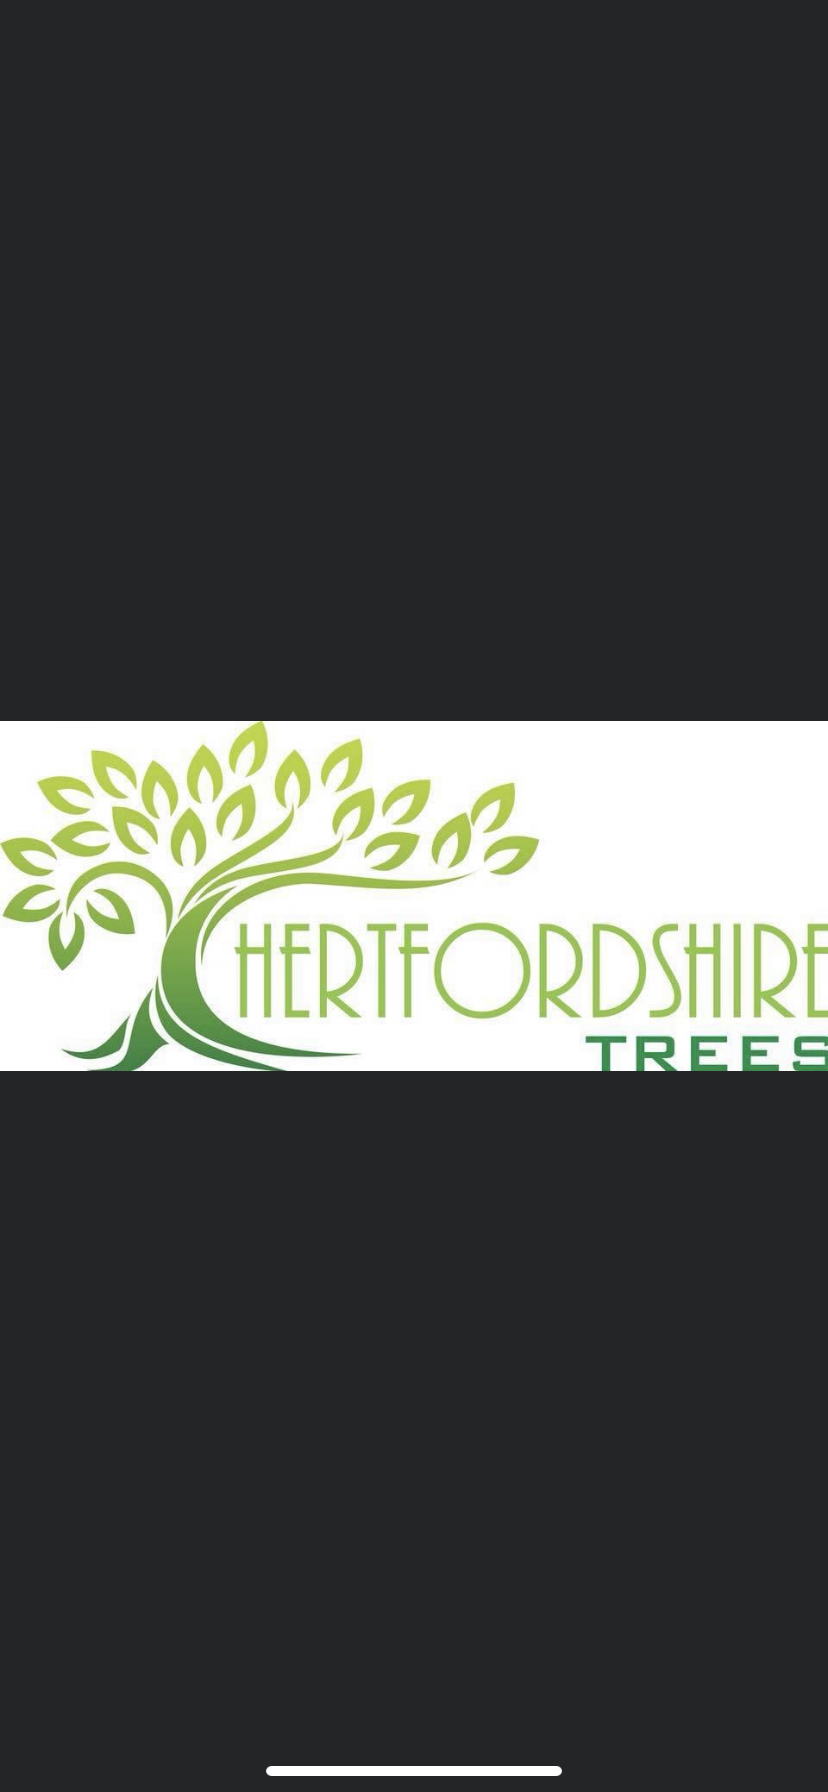 Hertfordshire Trees Verified Logo